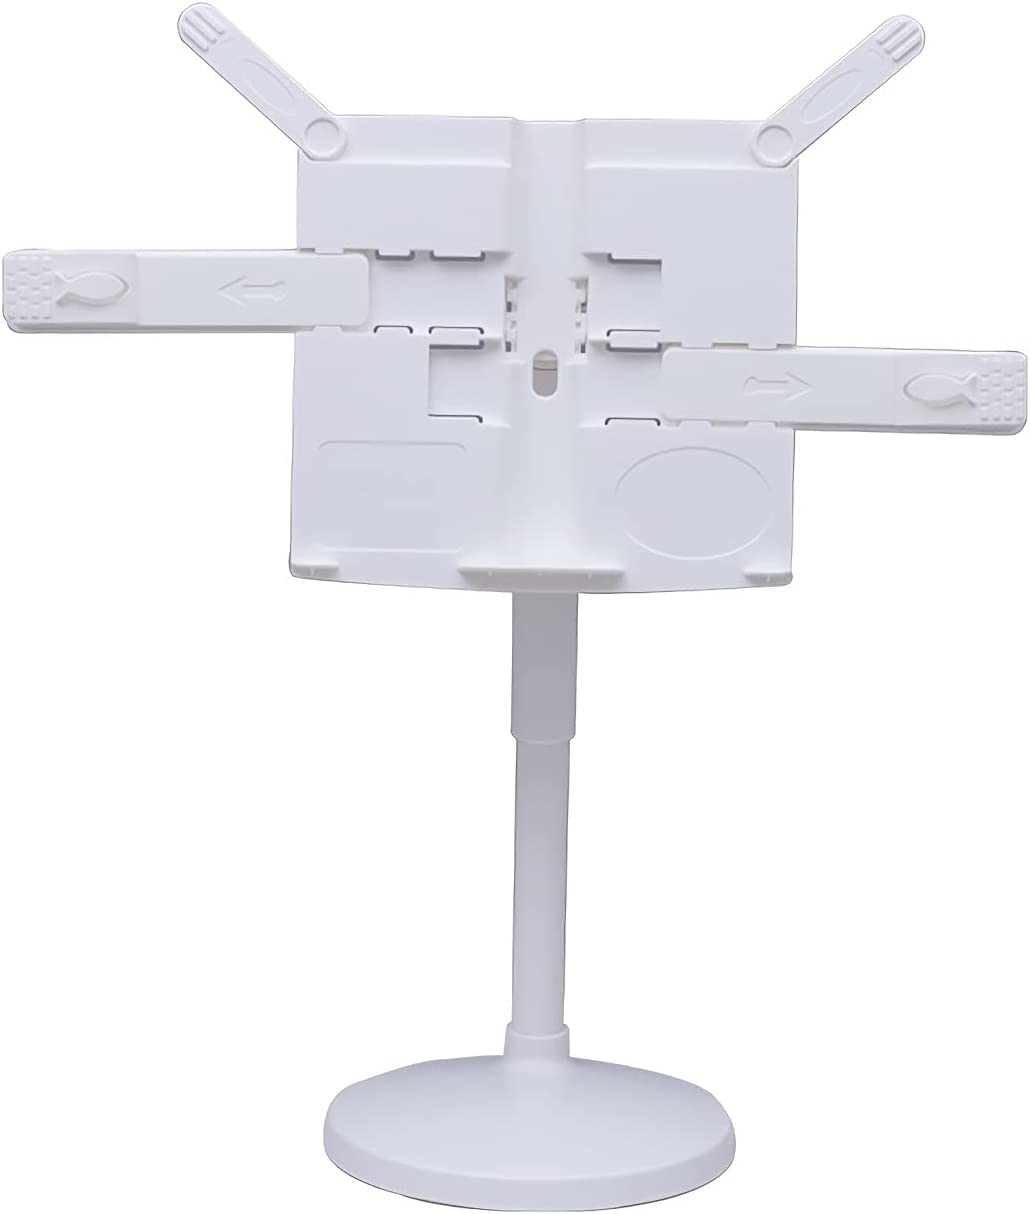 DAGCOT Book Stand Height fo Upright Holder Brand Cheap High quality new Sale Venue Adjustable